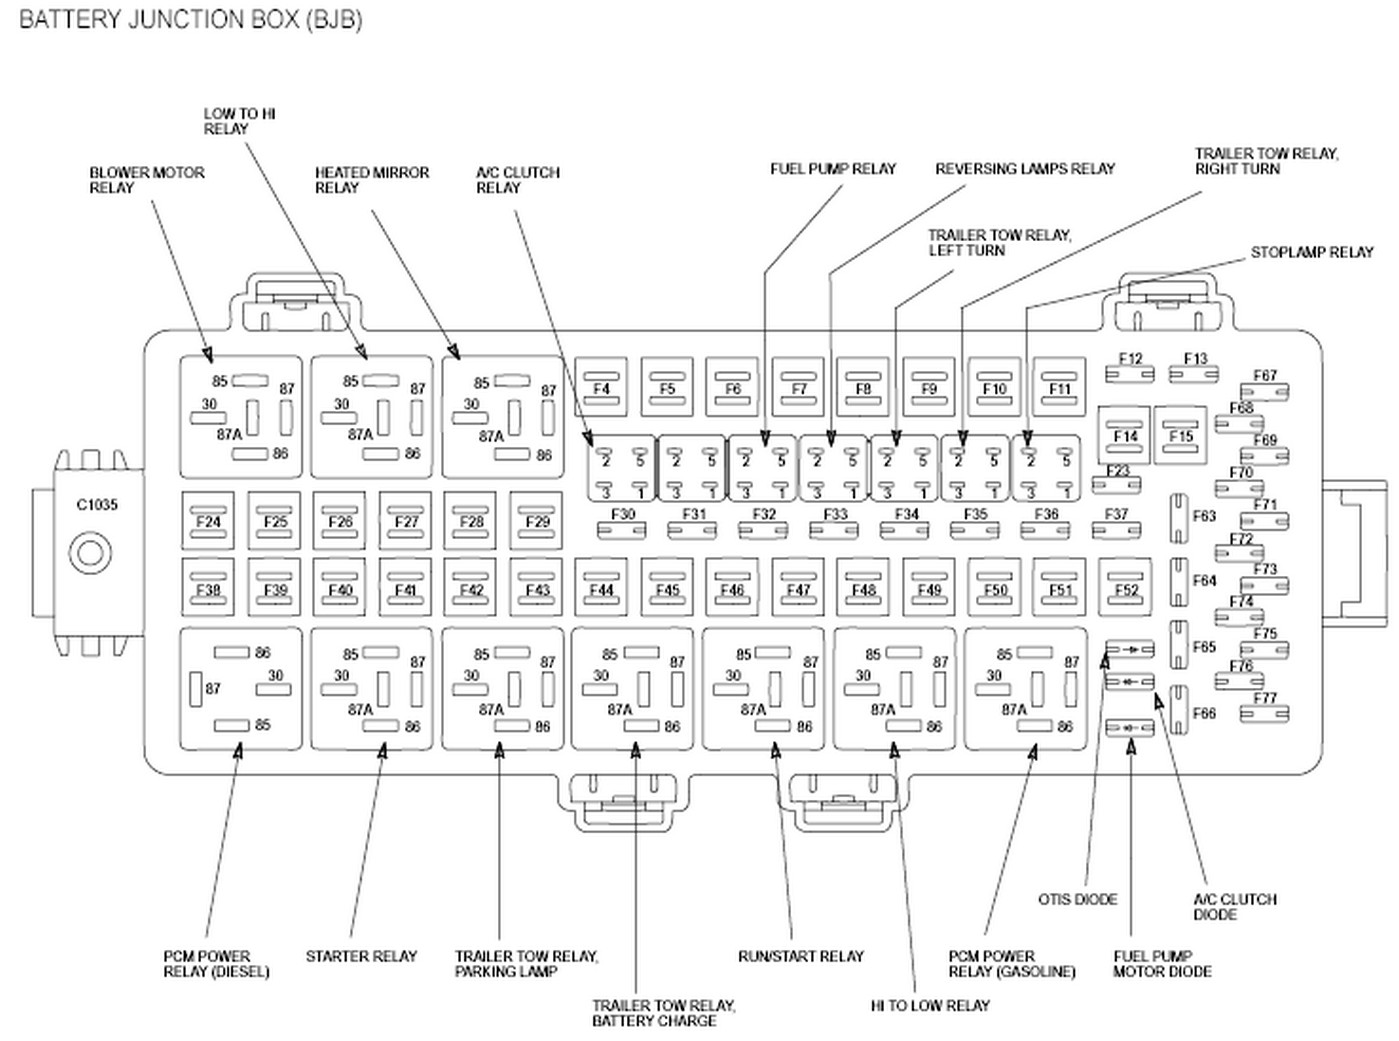 2012 Ford F350 Fuse Diagram - Wiring Diagram Server please-speed -  please-speed.ristoranteitredenari.it | 2015 F350 Fuse Box Diagram |  | Ristorante I Tre Denari Manerbio